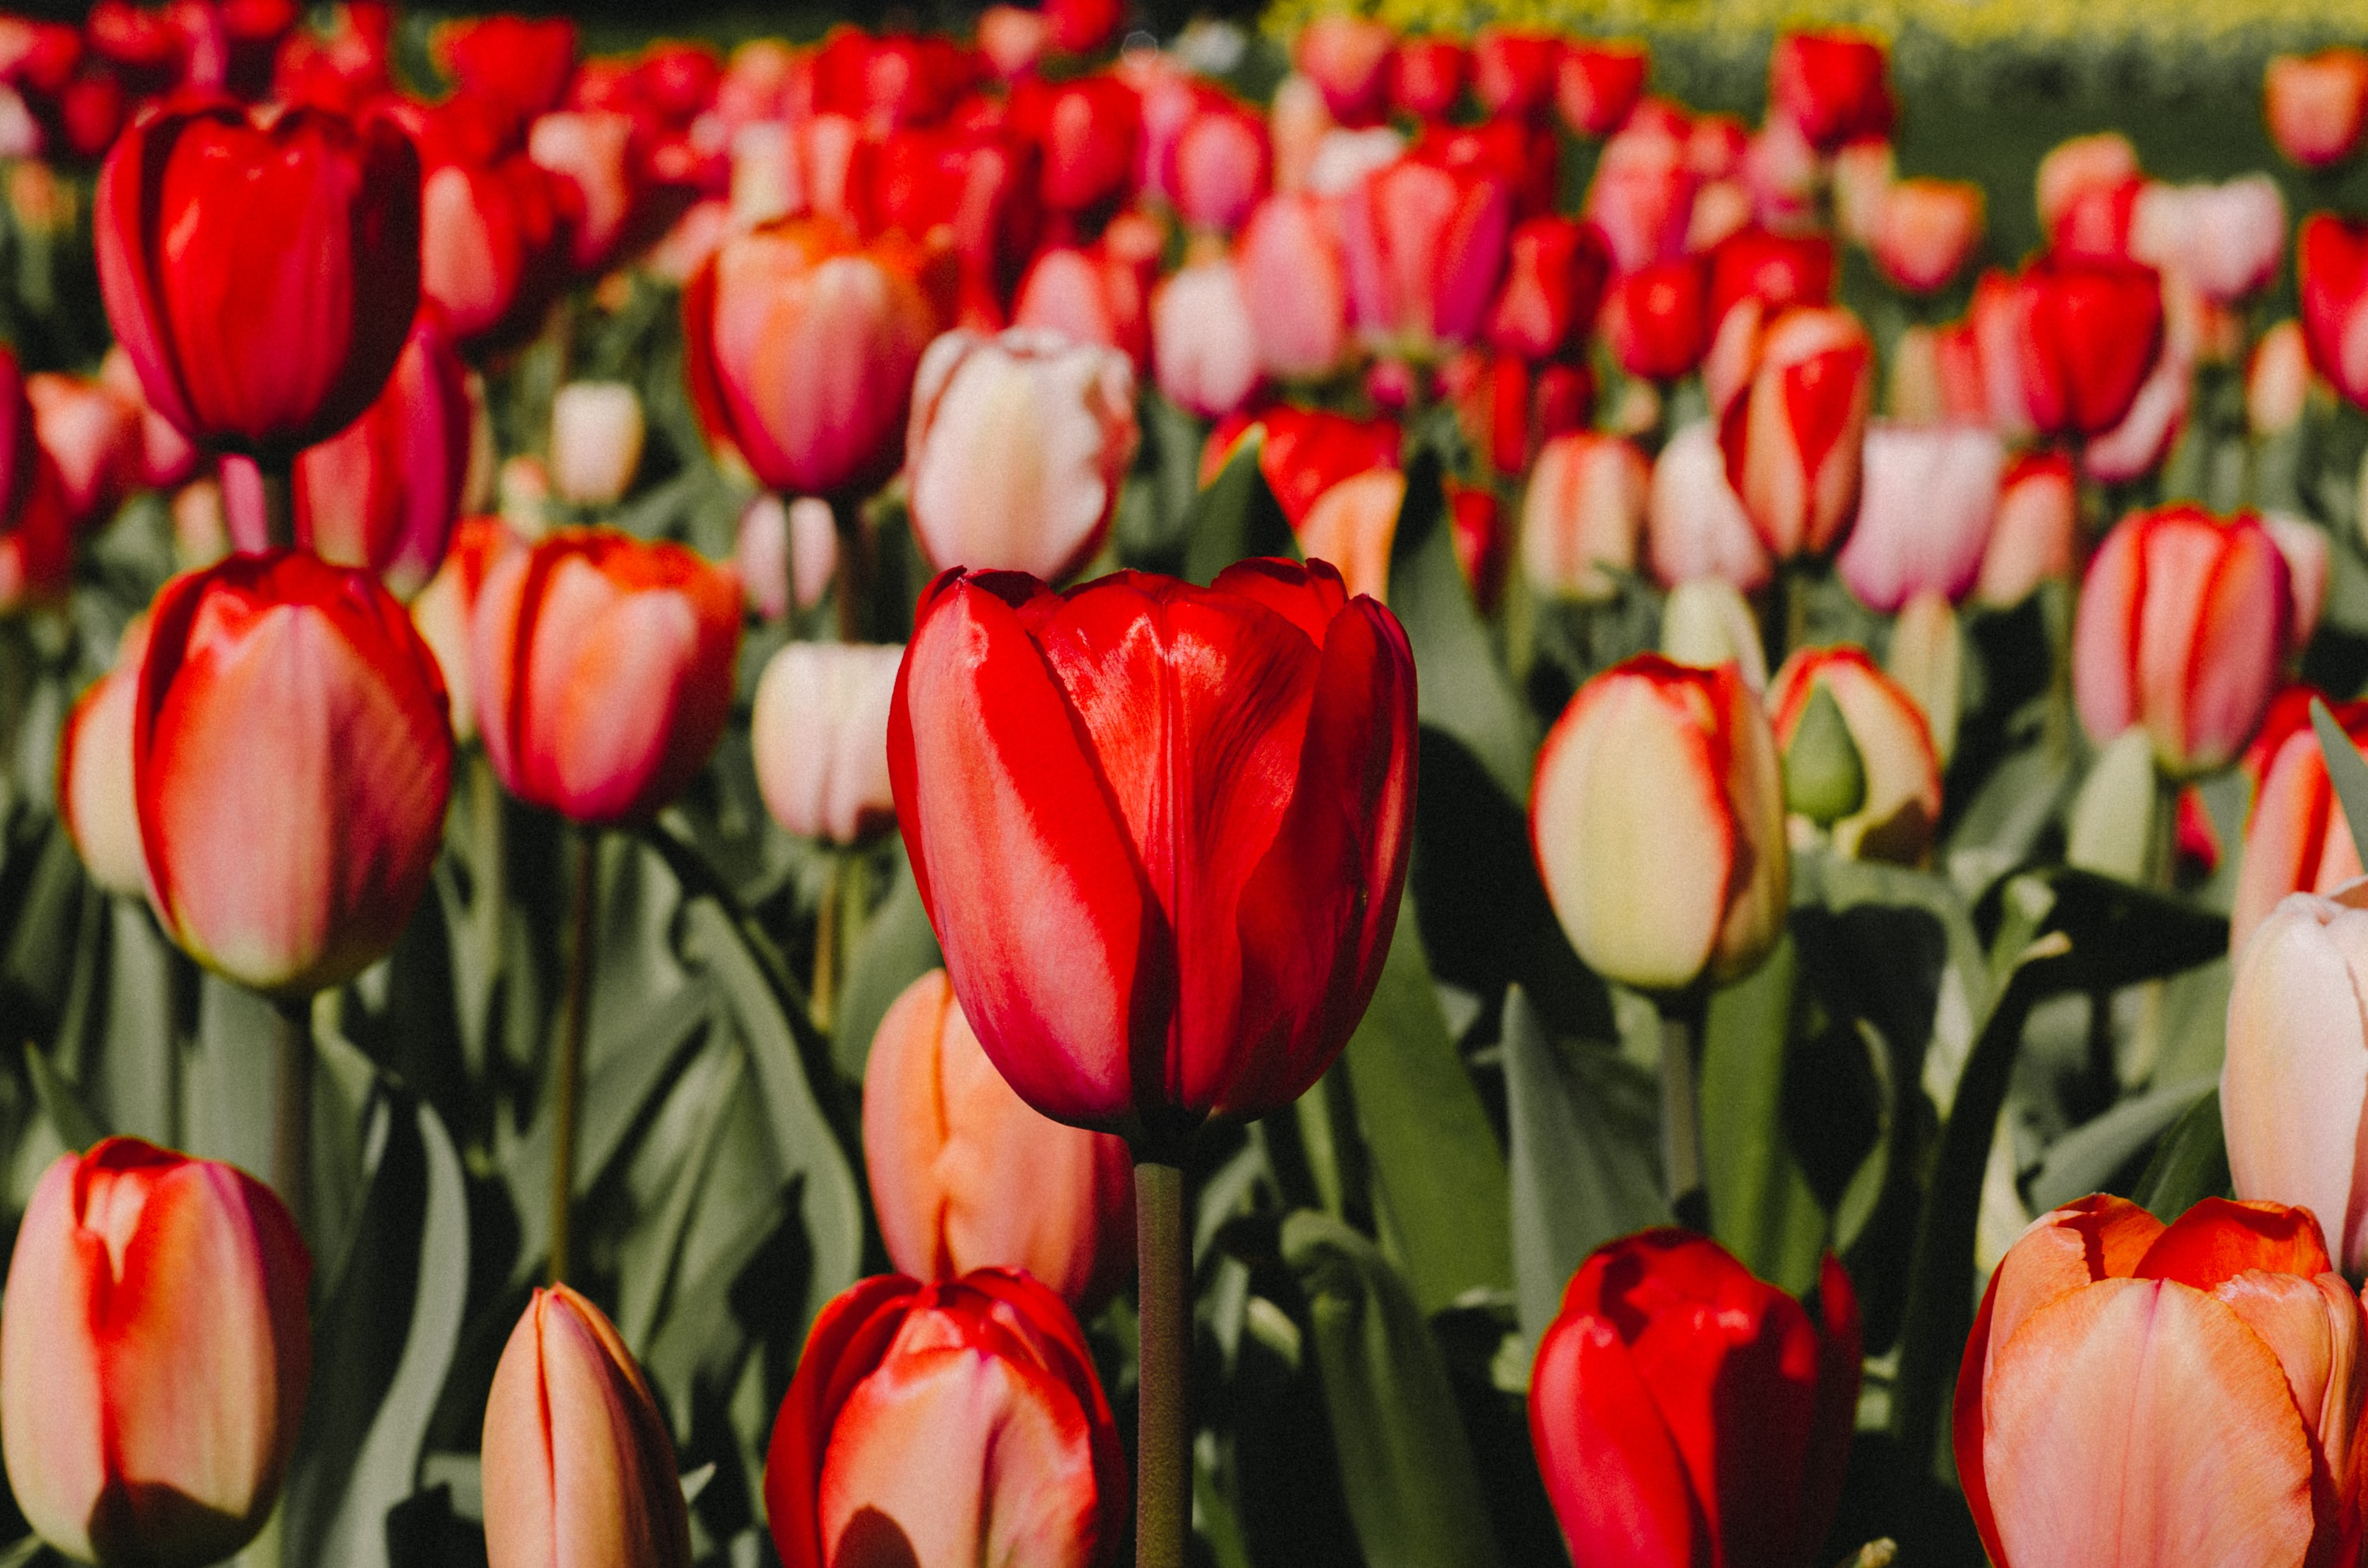 closeup photography of red tulips flowers